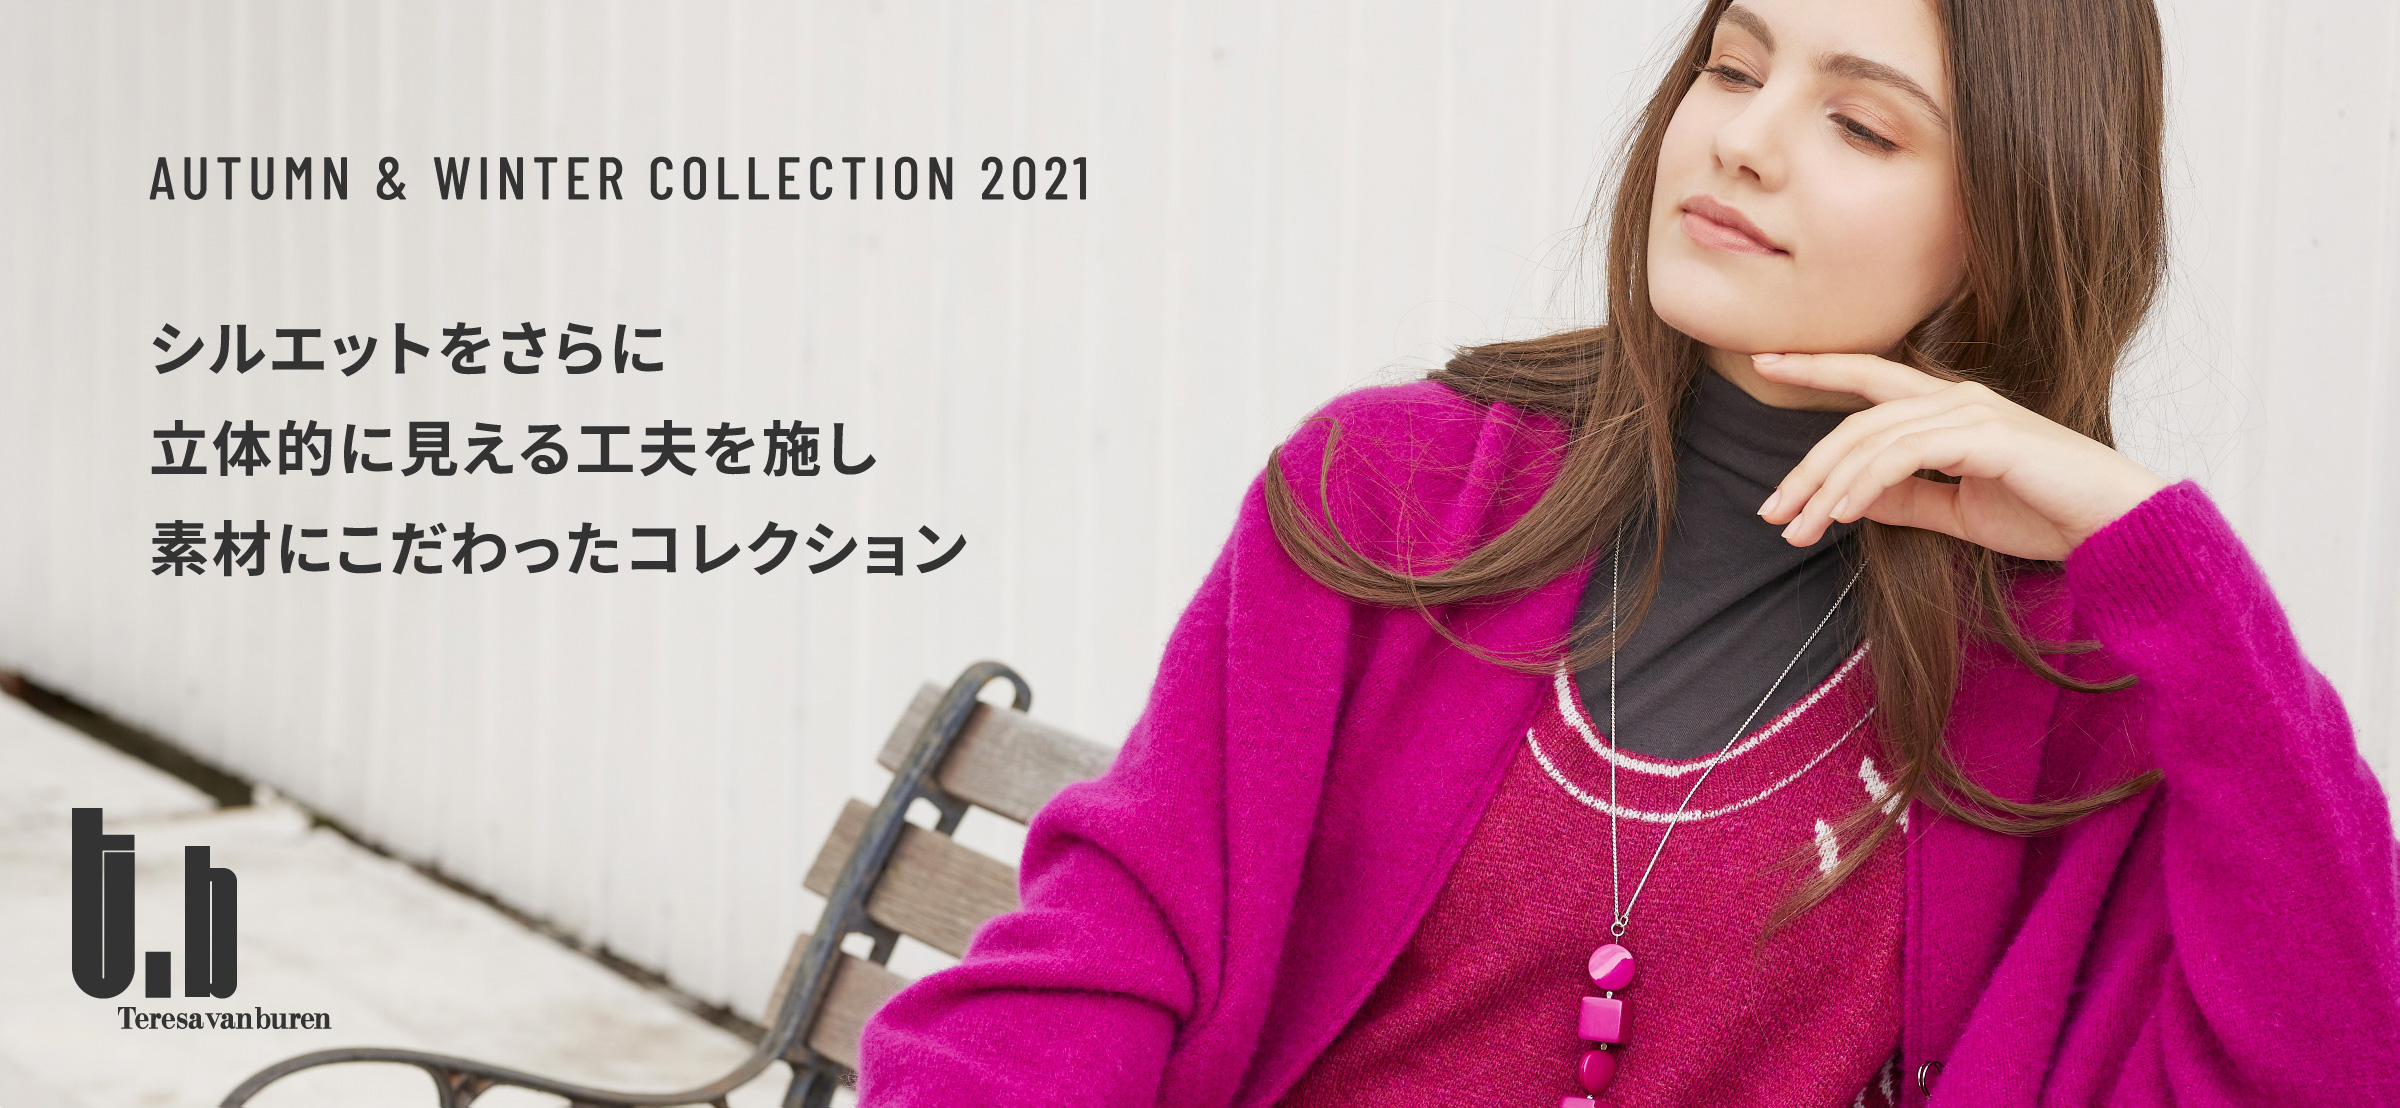 t.b AUTUMN & WINTER COLLECTION 2021